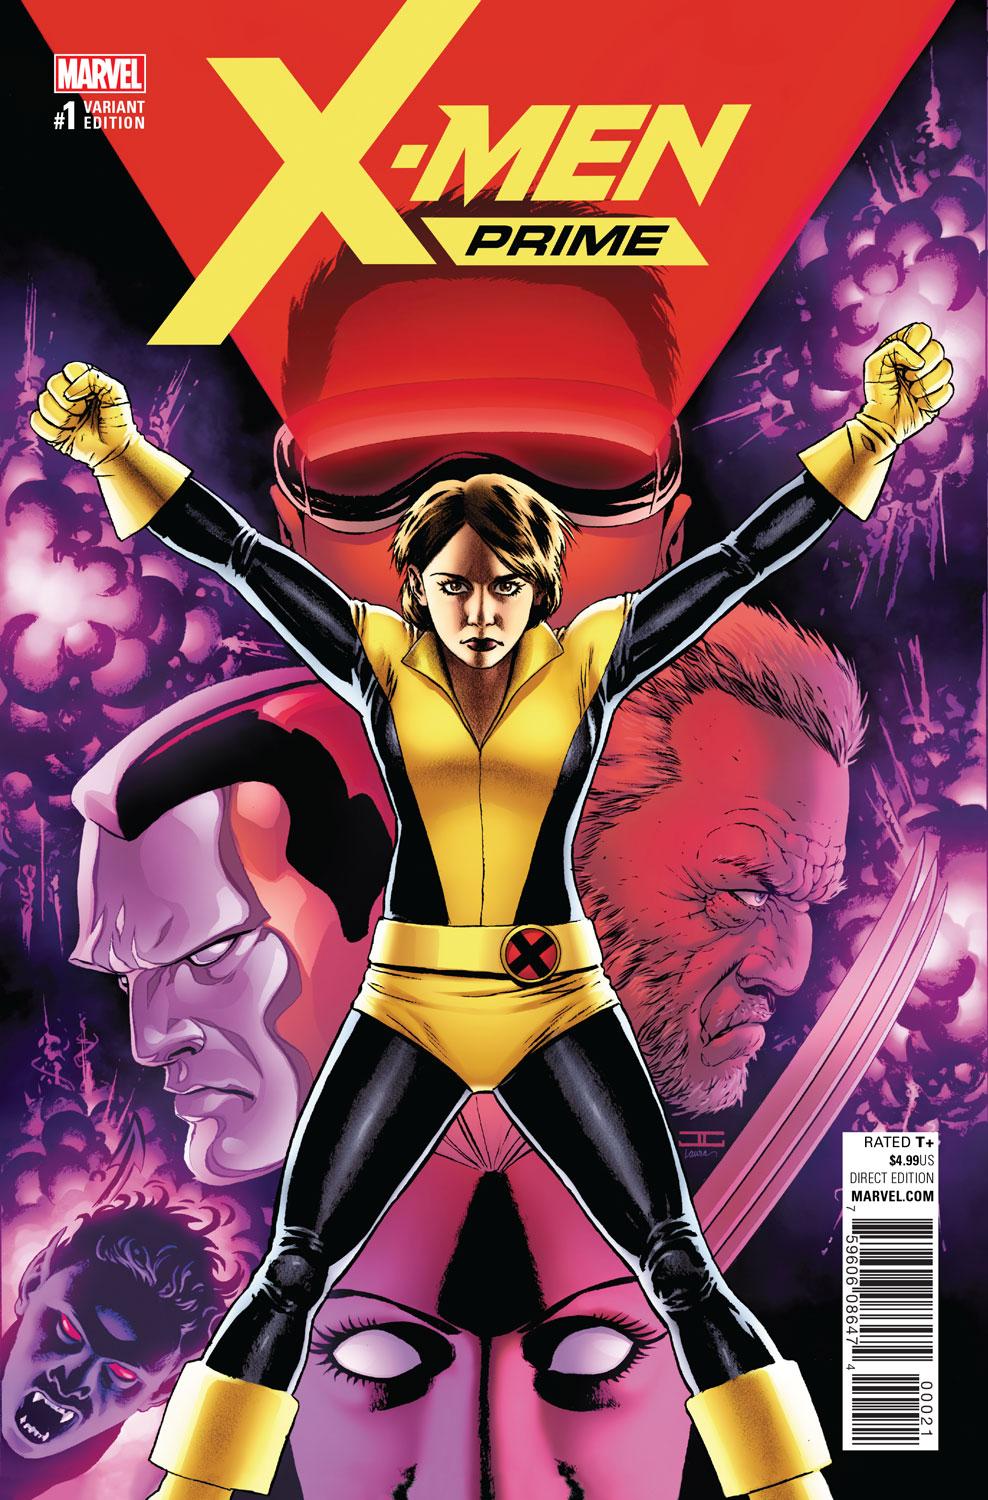 X-Men_Prime_1_Cassaday_Variant.jpg